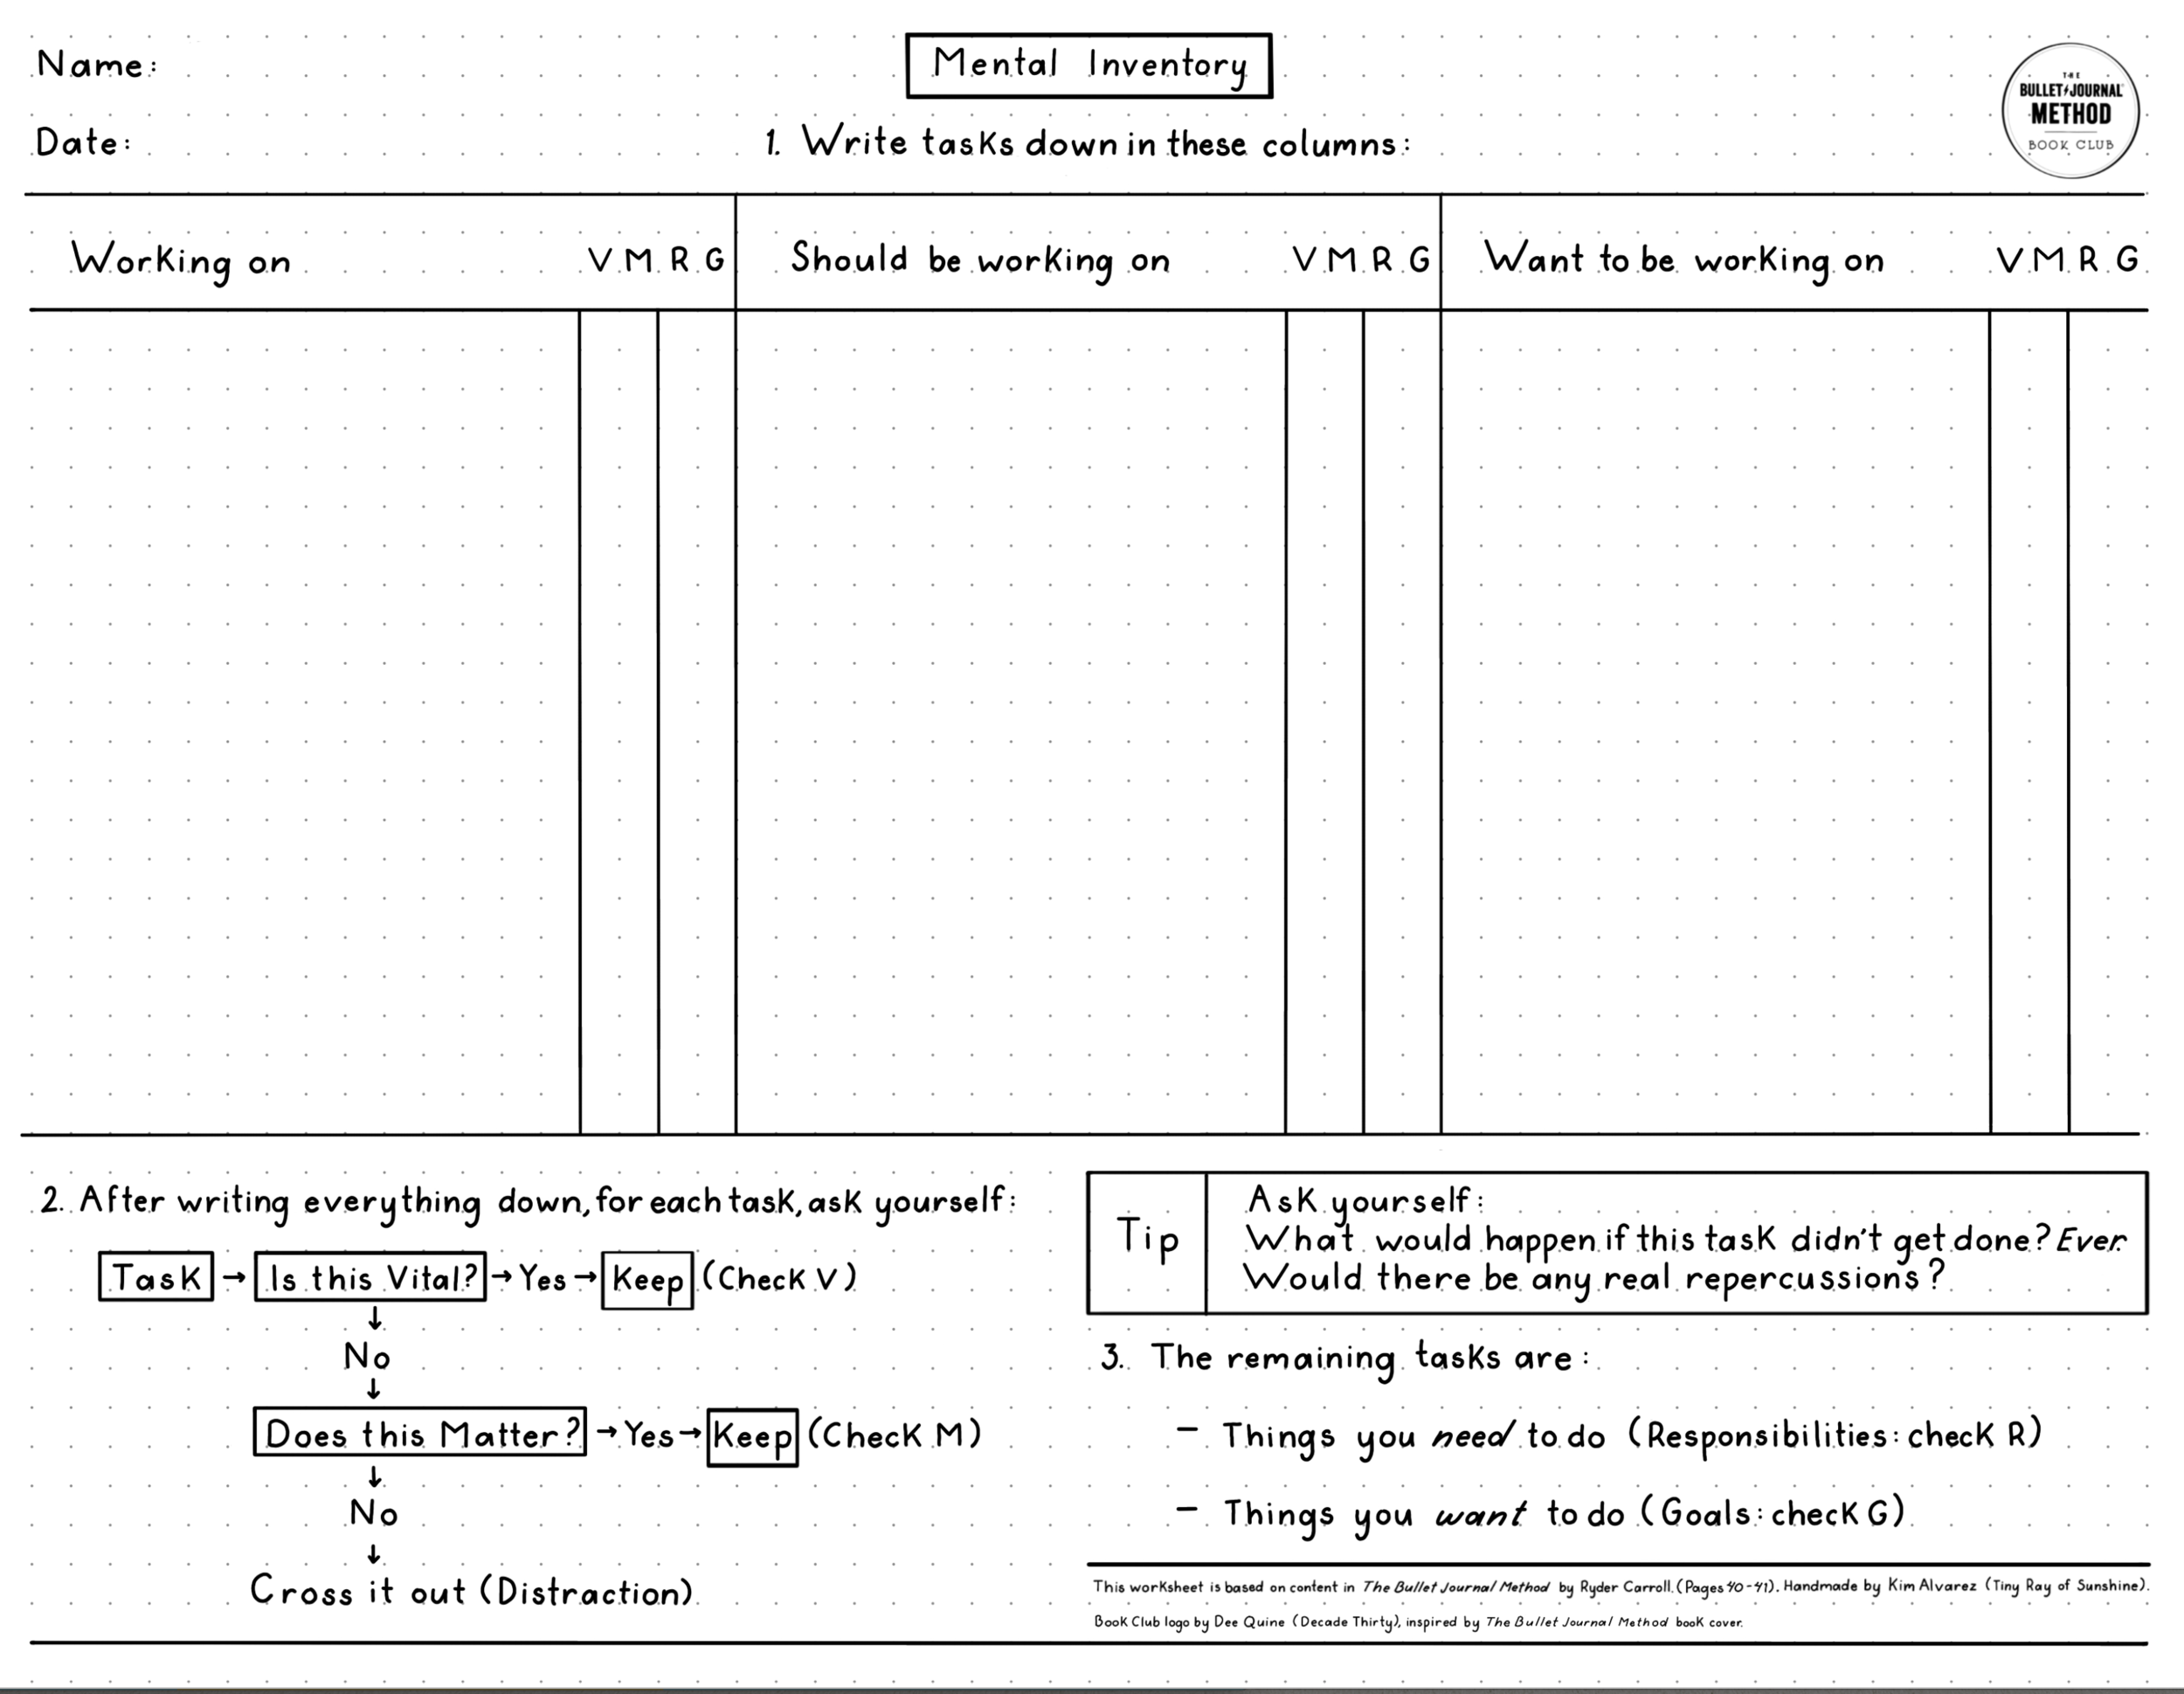 """Mental Inventory Worksheet - Based on """"Decluttering Your Mind"""" in Ryder's book. Designed to keep it all in one handy place."""